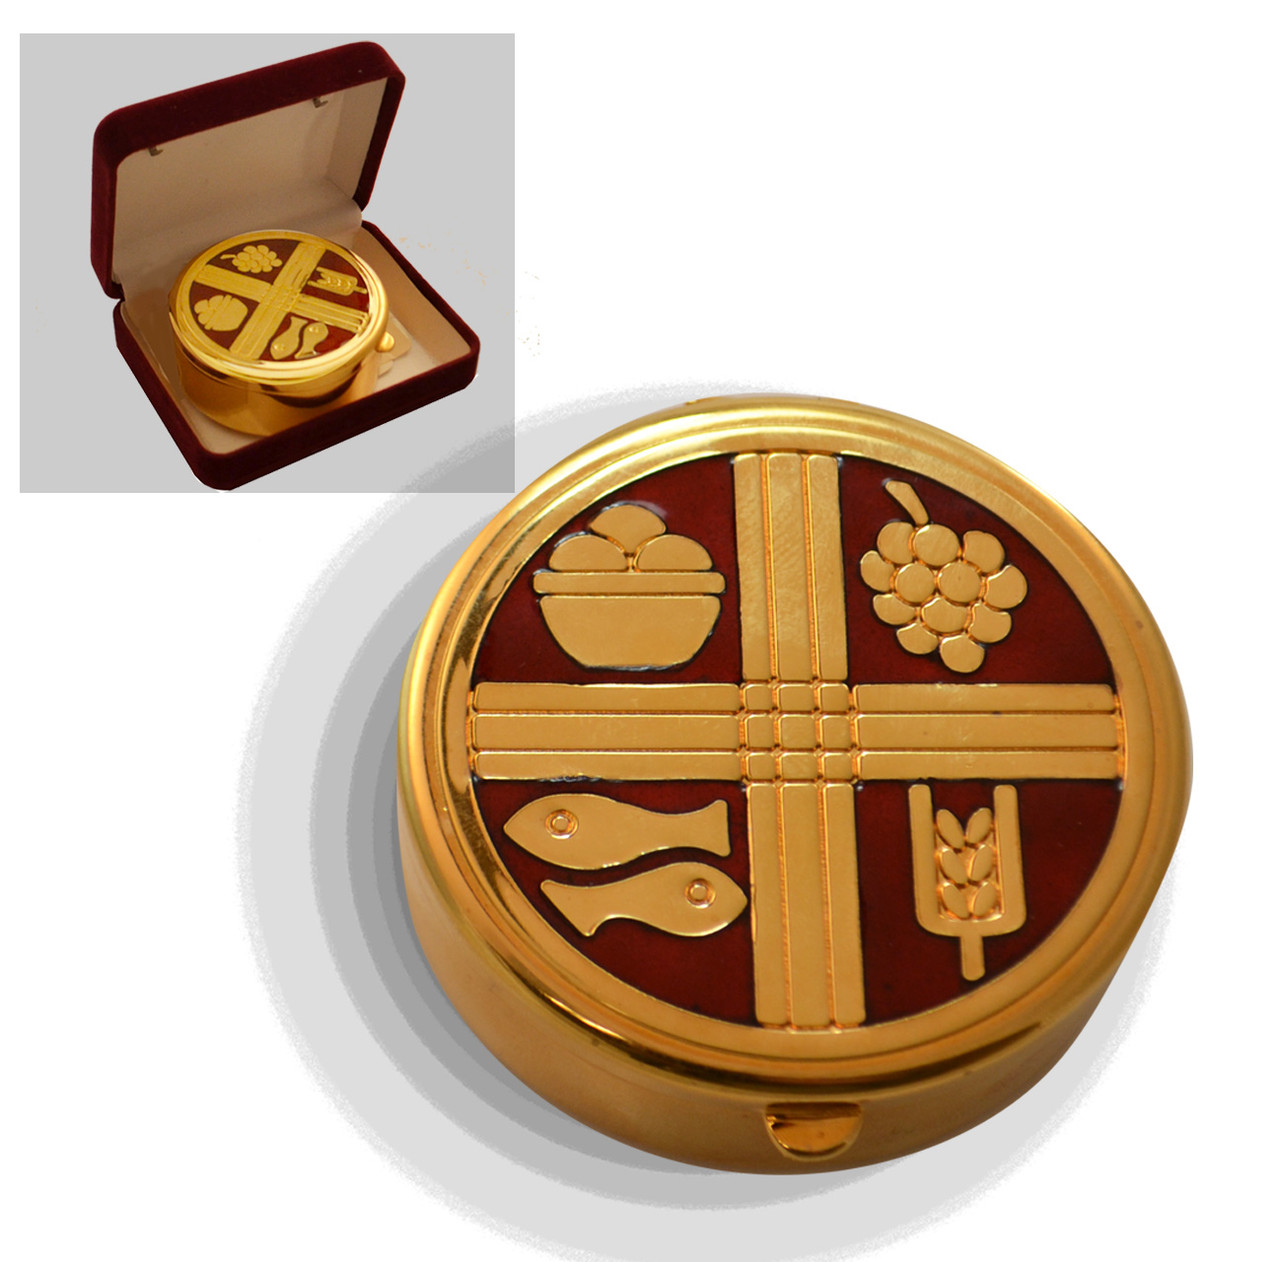 AS 400 Gold Plate Pyx from Artistic Silver